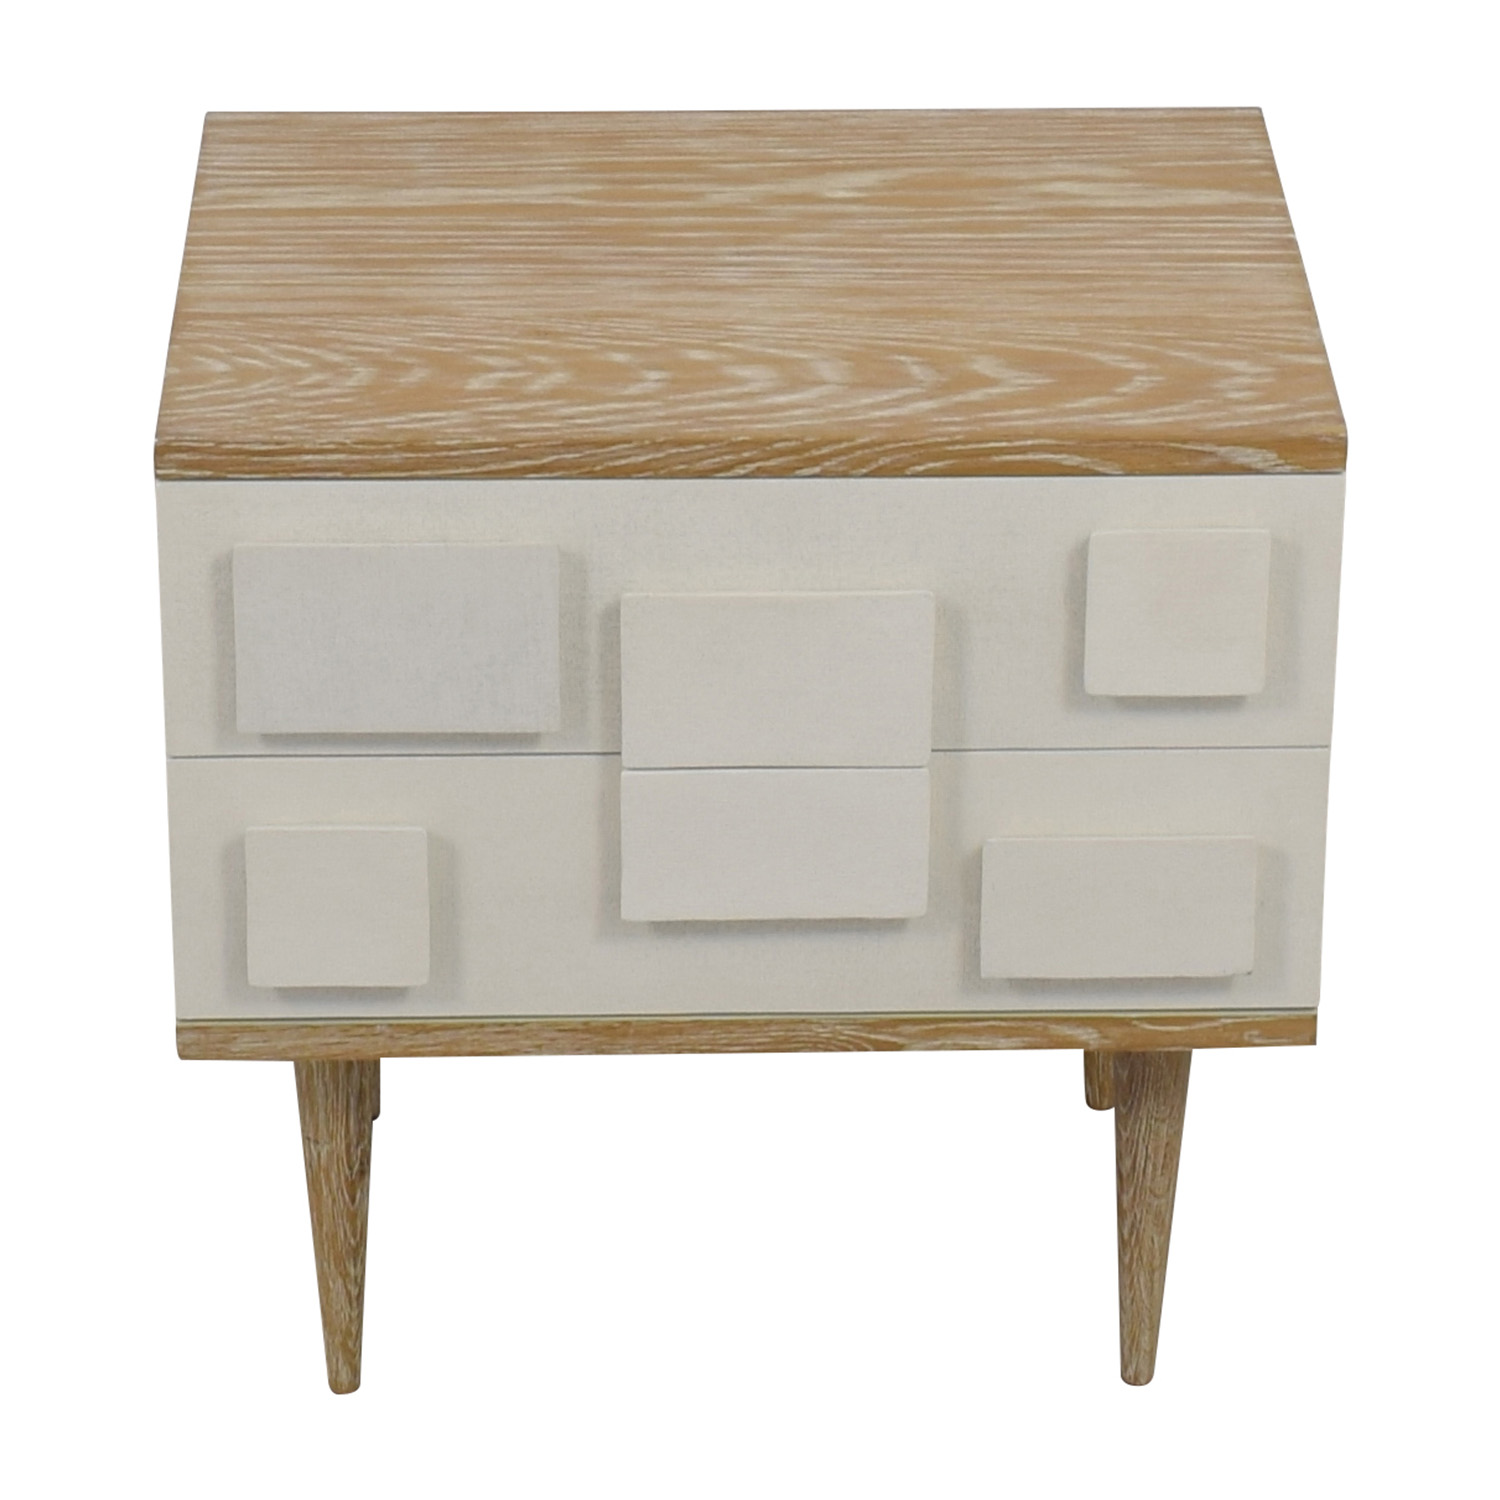 Bungalow 5 Bungalow 5 Ponti Two-Drawer Side Table Sofas